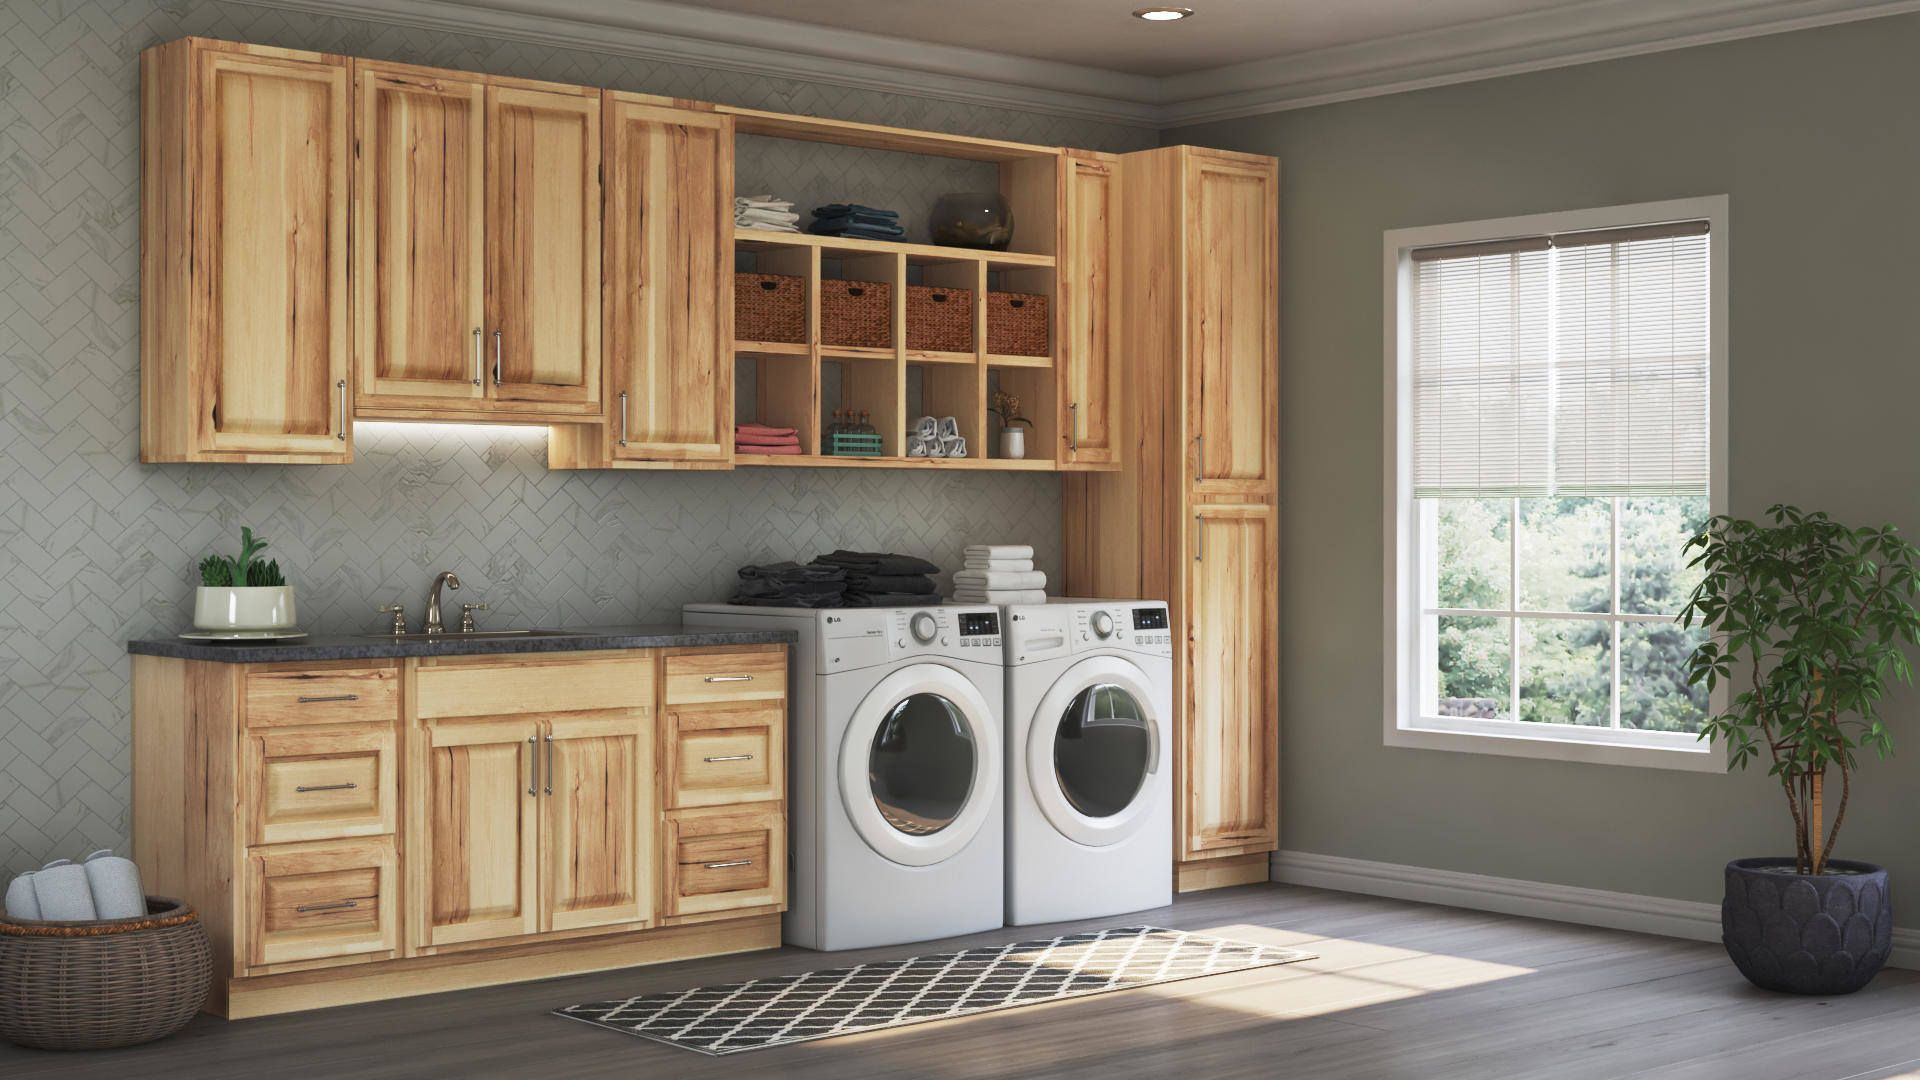 Hampton Wall Kitchen Cabinets In Natural Hickory Kitchen The Home Depot Laundry Room Cabinets Laundry Room Laundry Room Storage